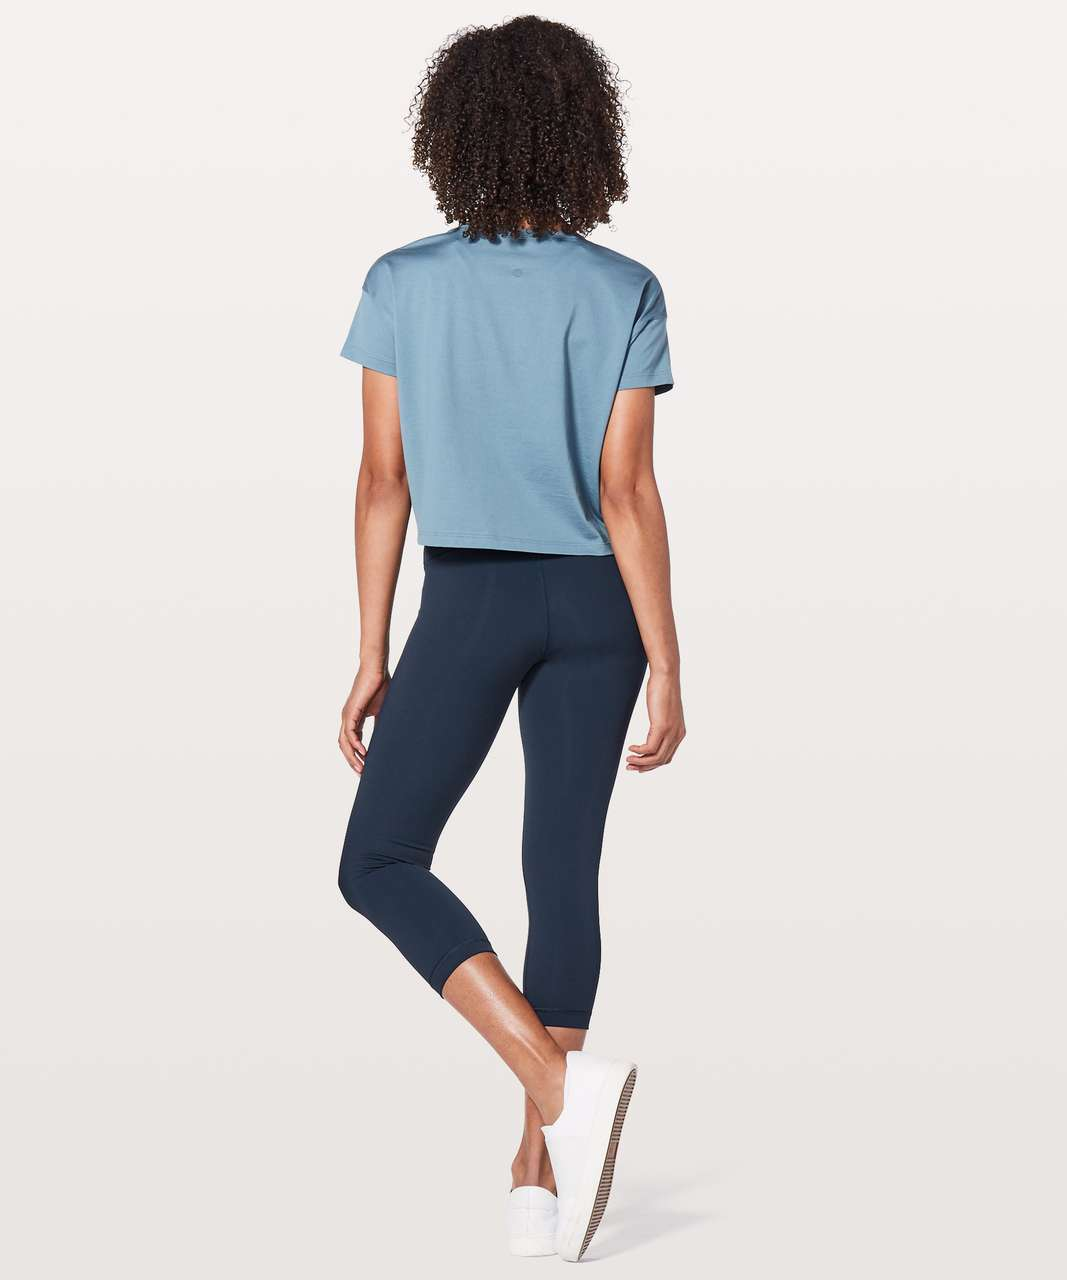 "Lululemon Wunder Under Crop (Hi-Rise) 21"" - True Navy"